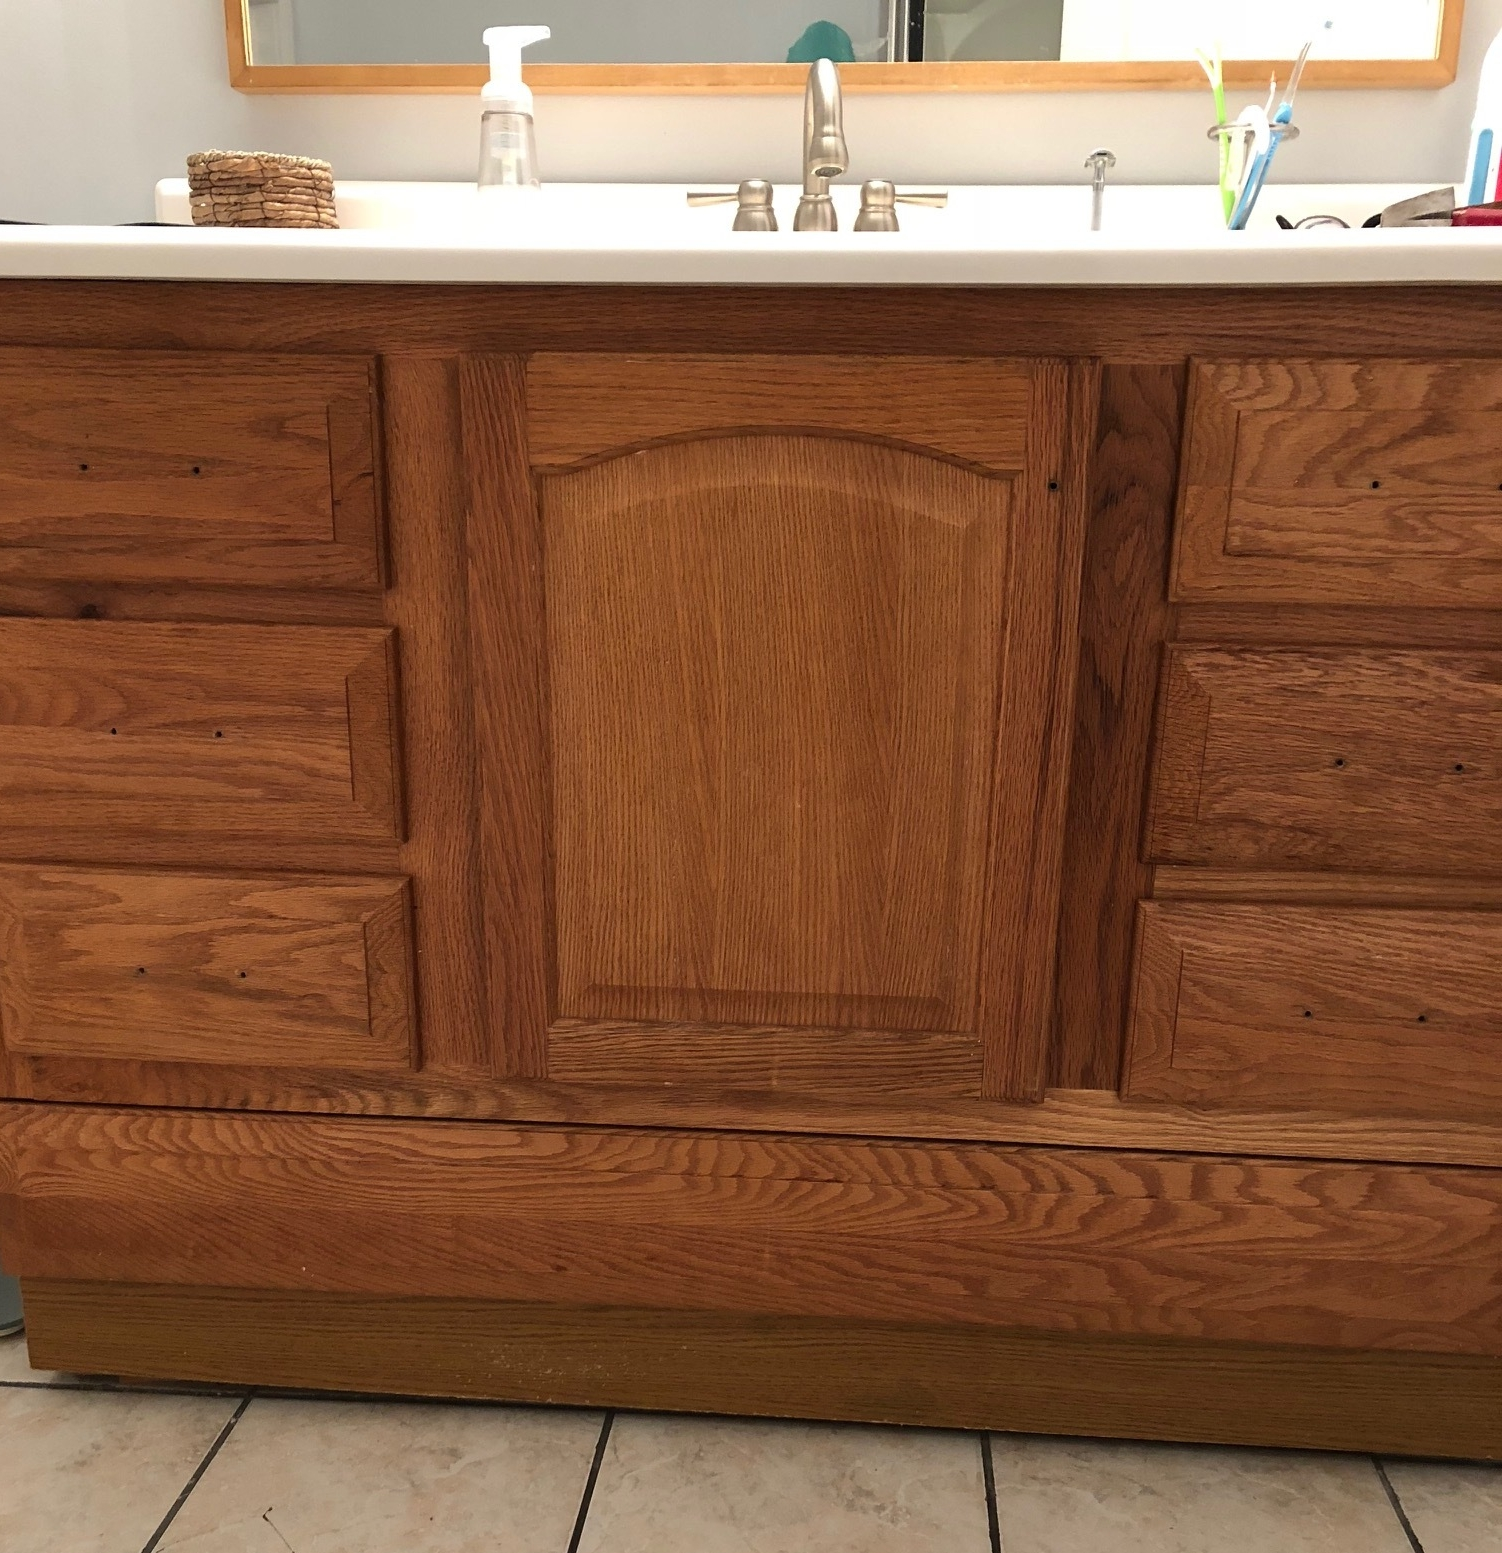 Gray Oak Studio - 2 Days 200 Dollars - Prepping vanity for paint